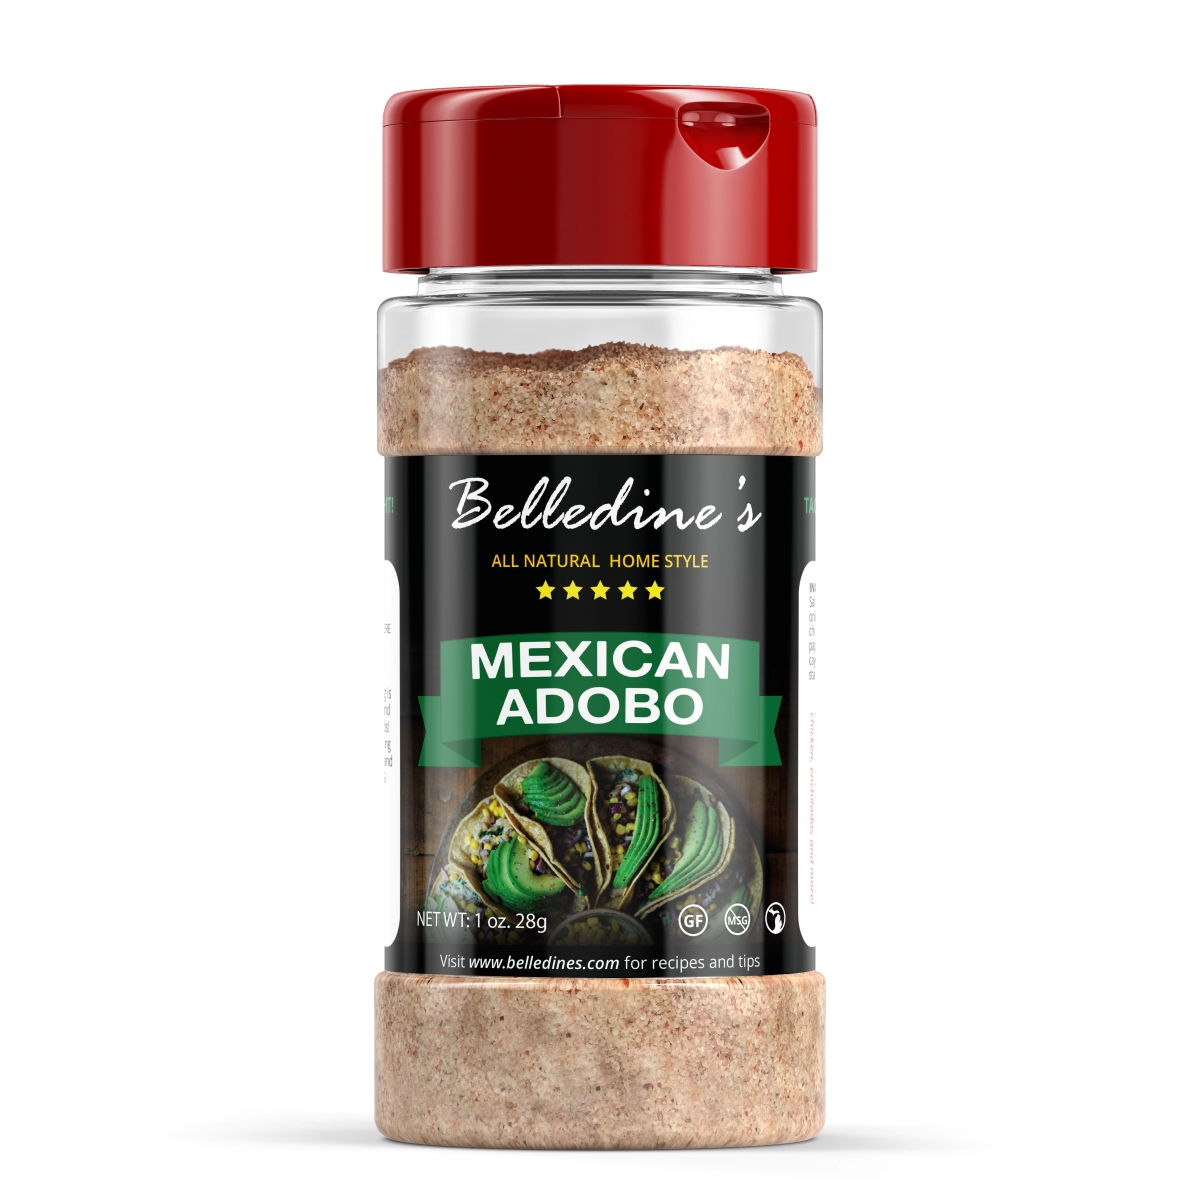 Mexican Adobo Belledine S Barbecue Sauce And Seasonings